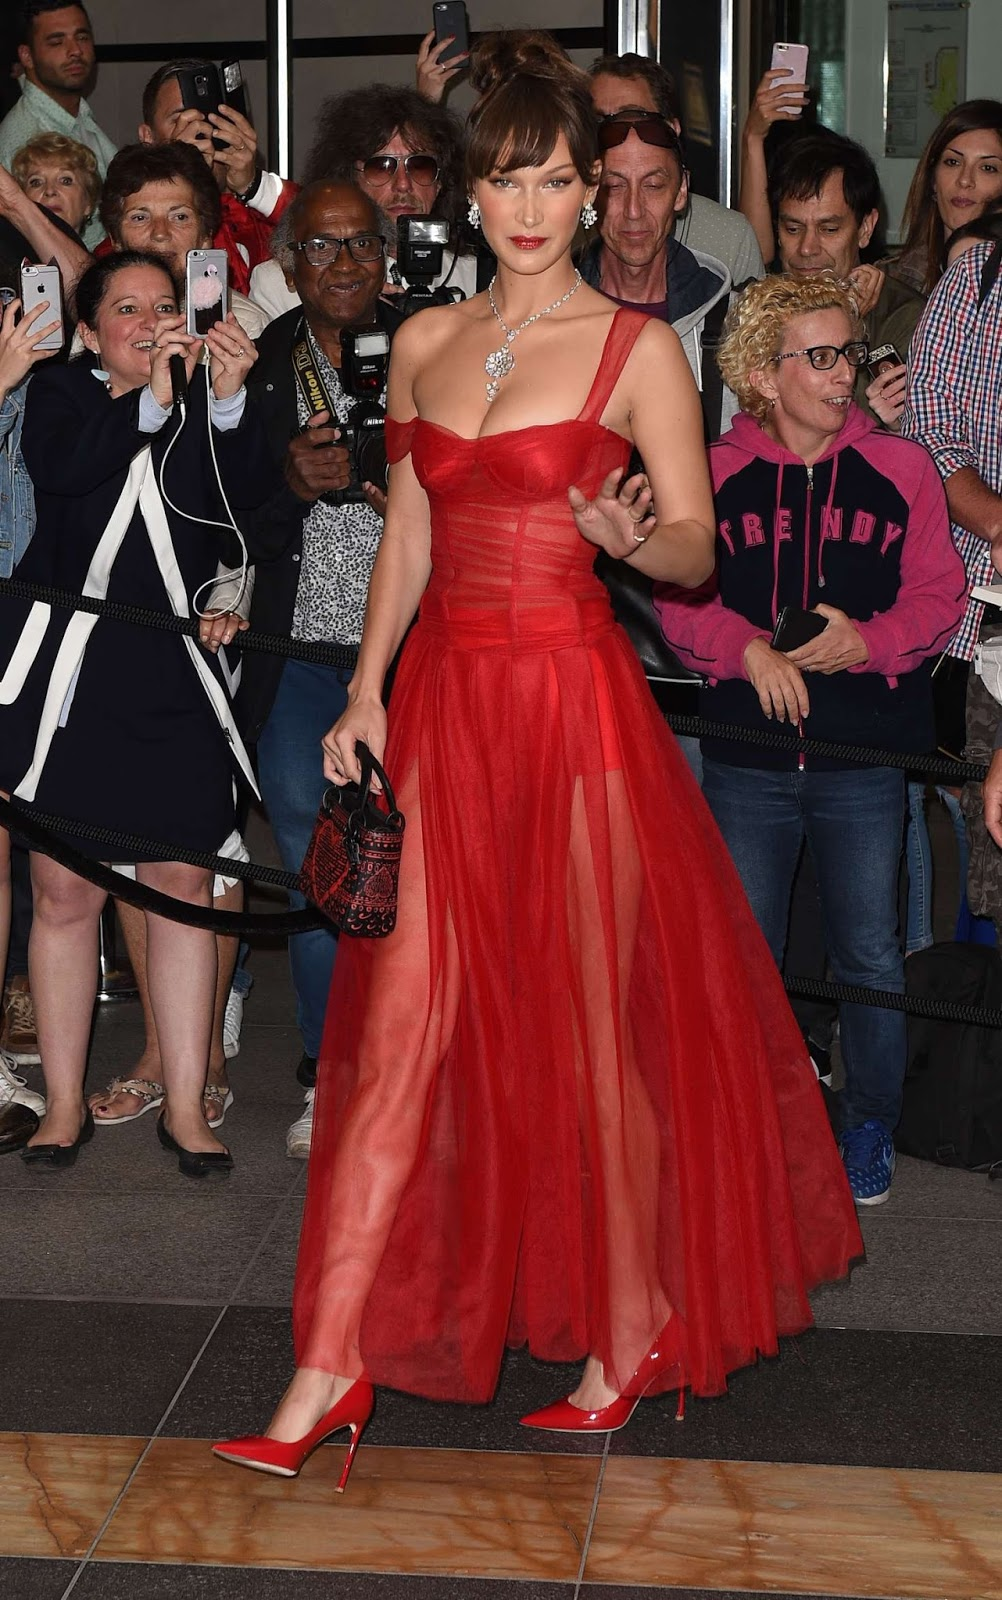 Bella Hadid Arriving for the Dior Dinner in Cannes